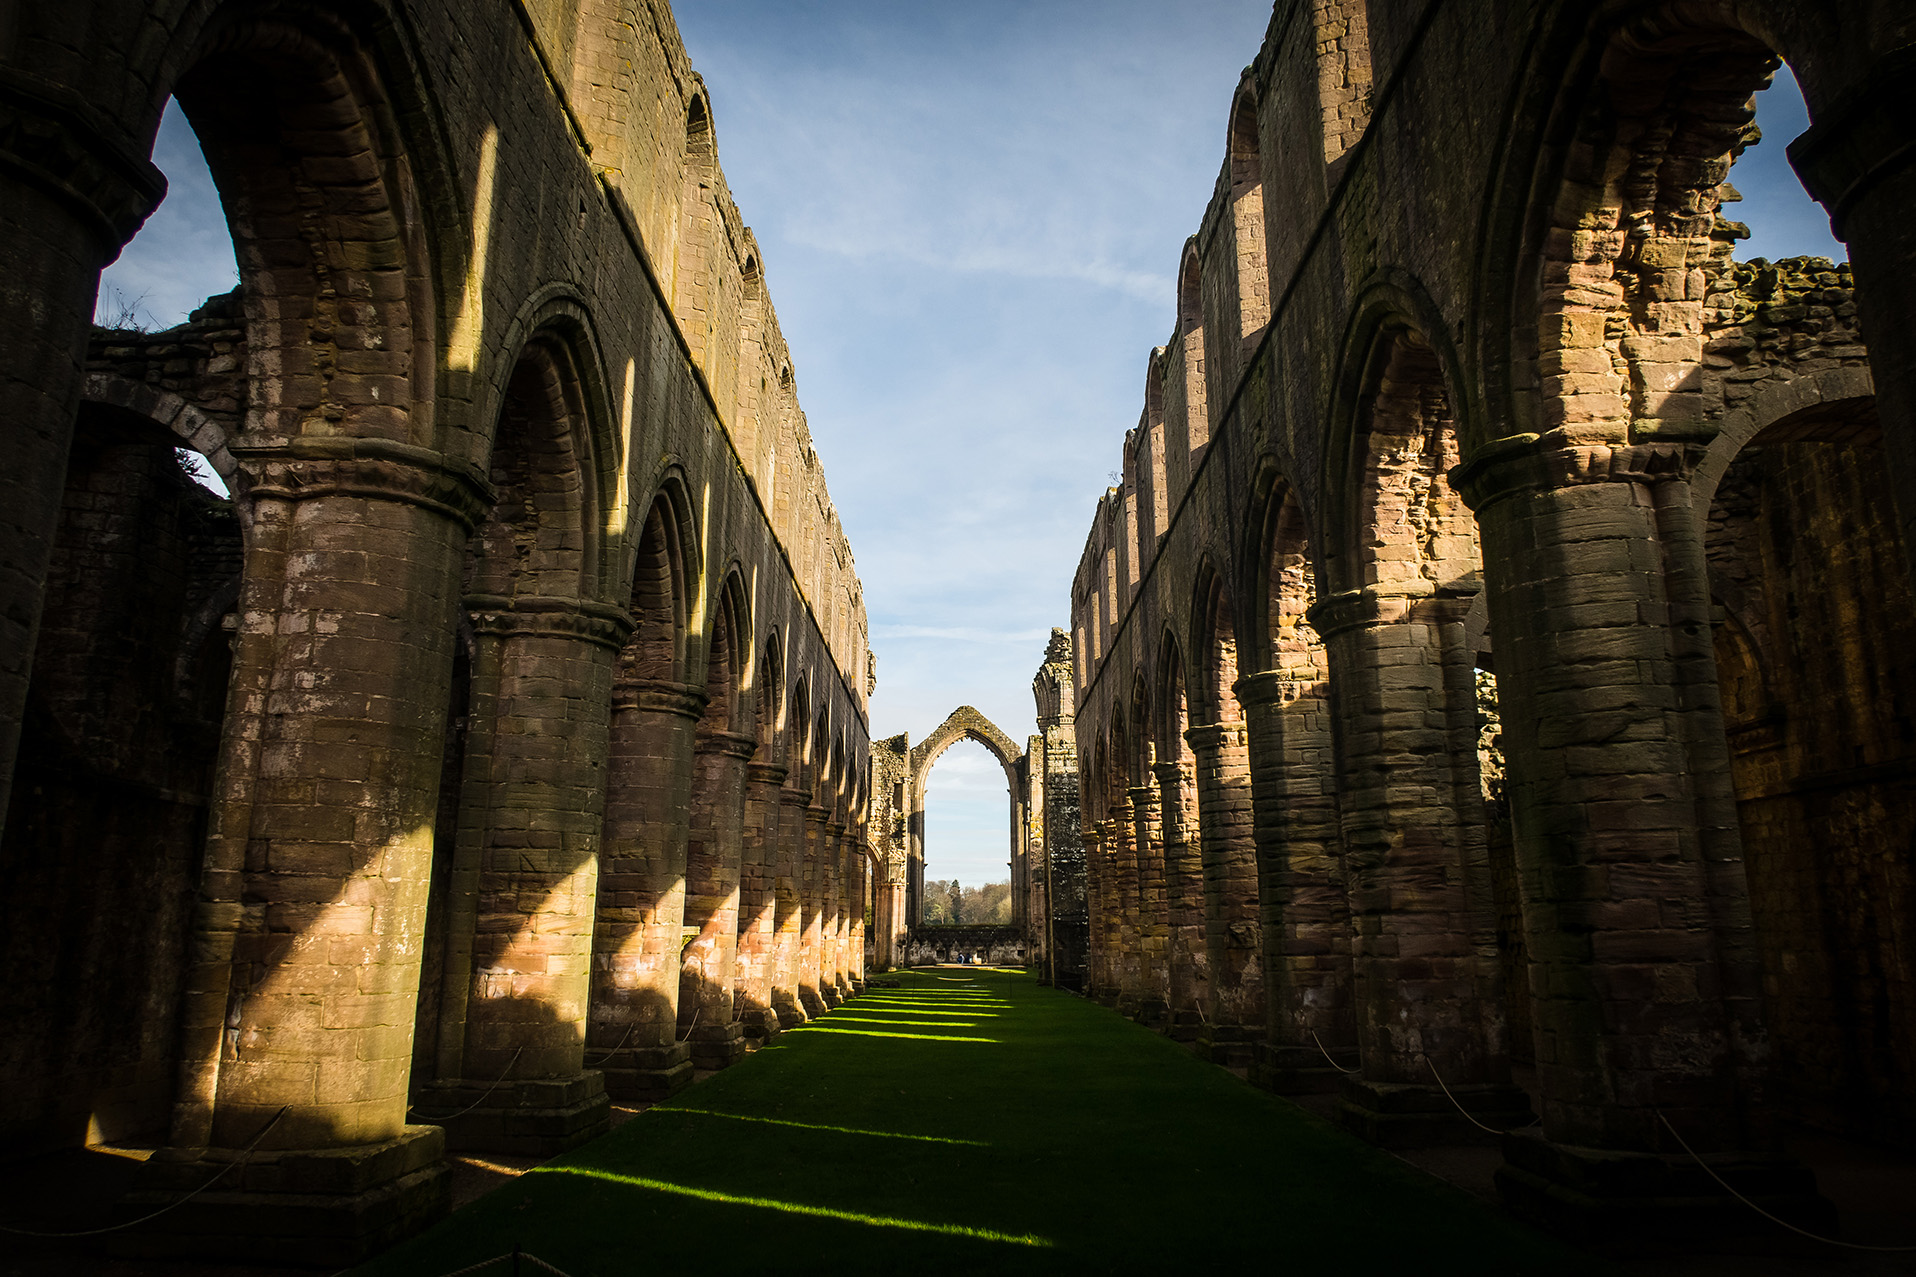 arches fountains abbey yorkshire